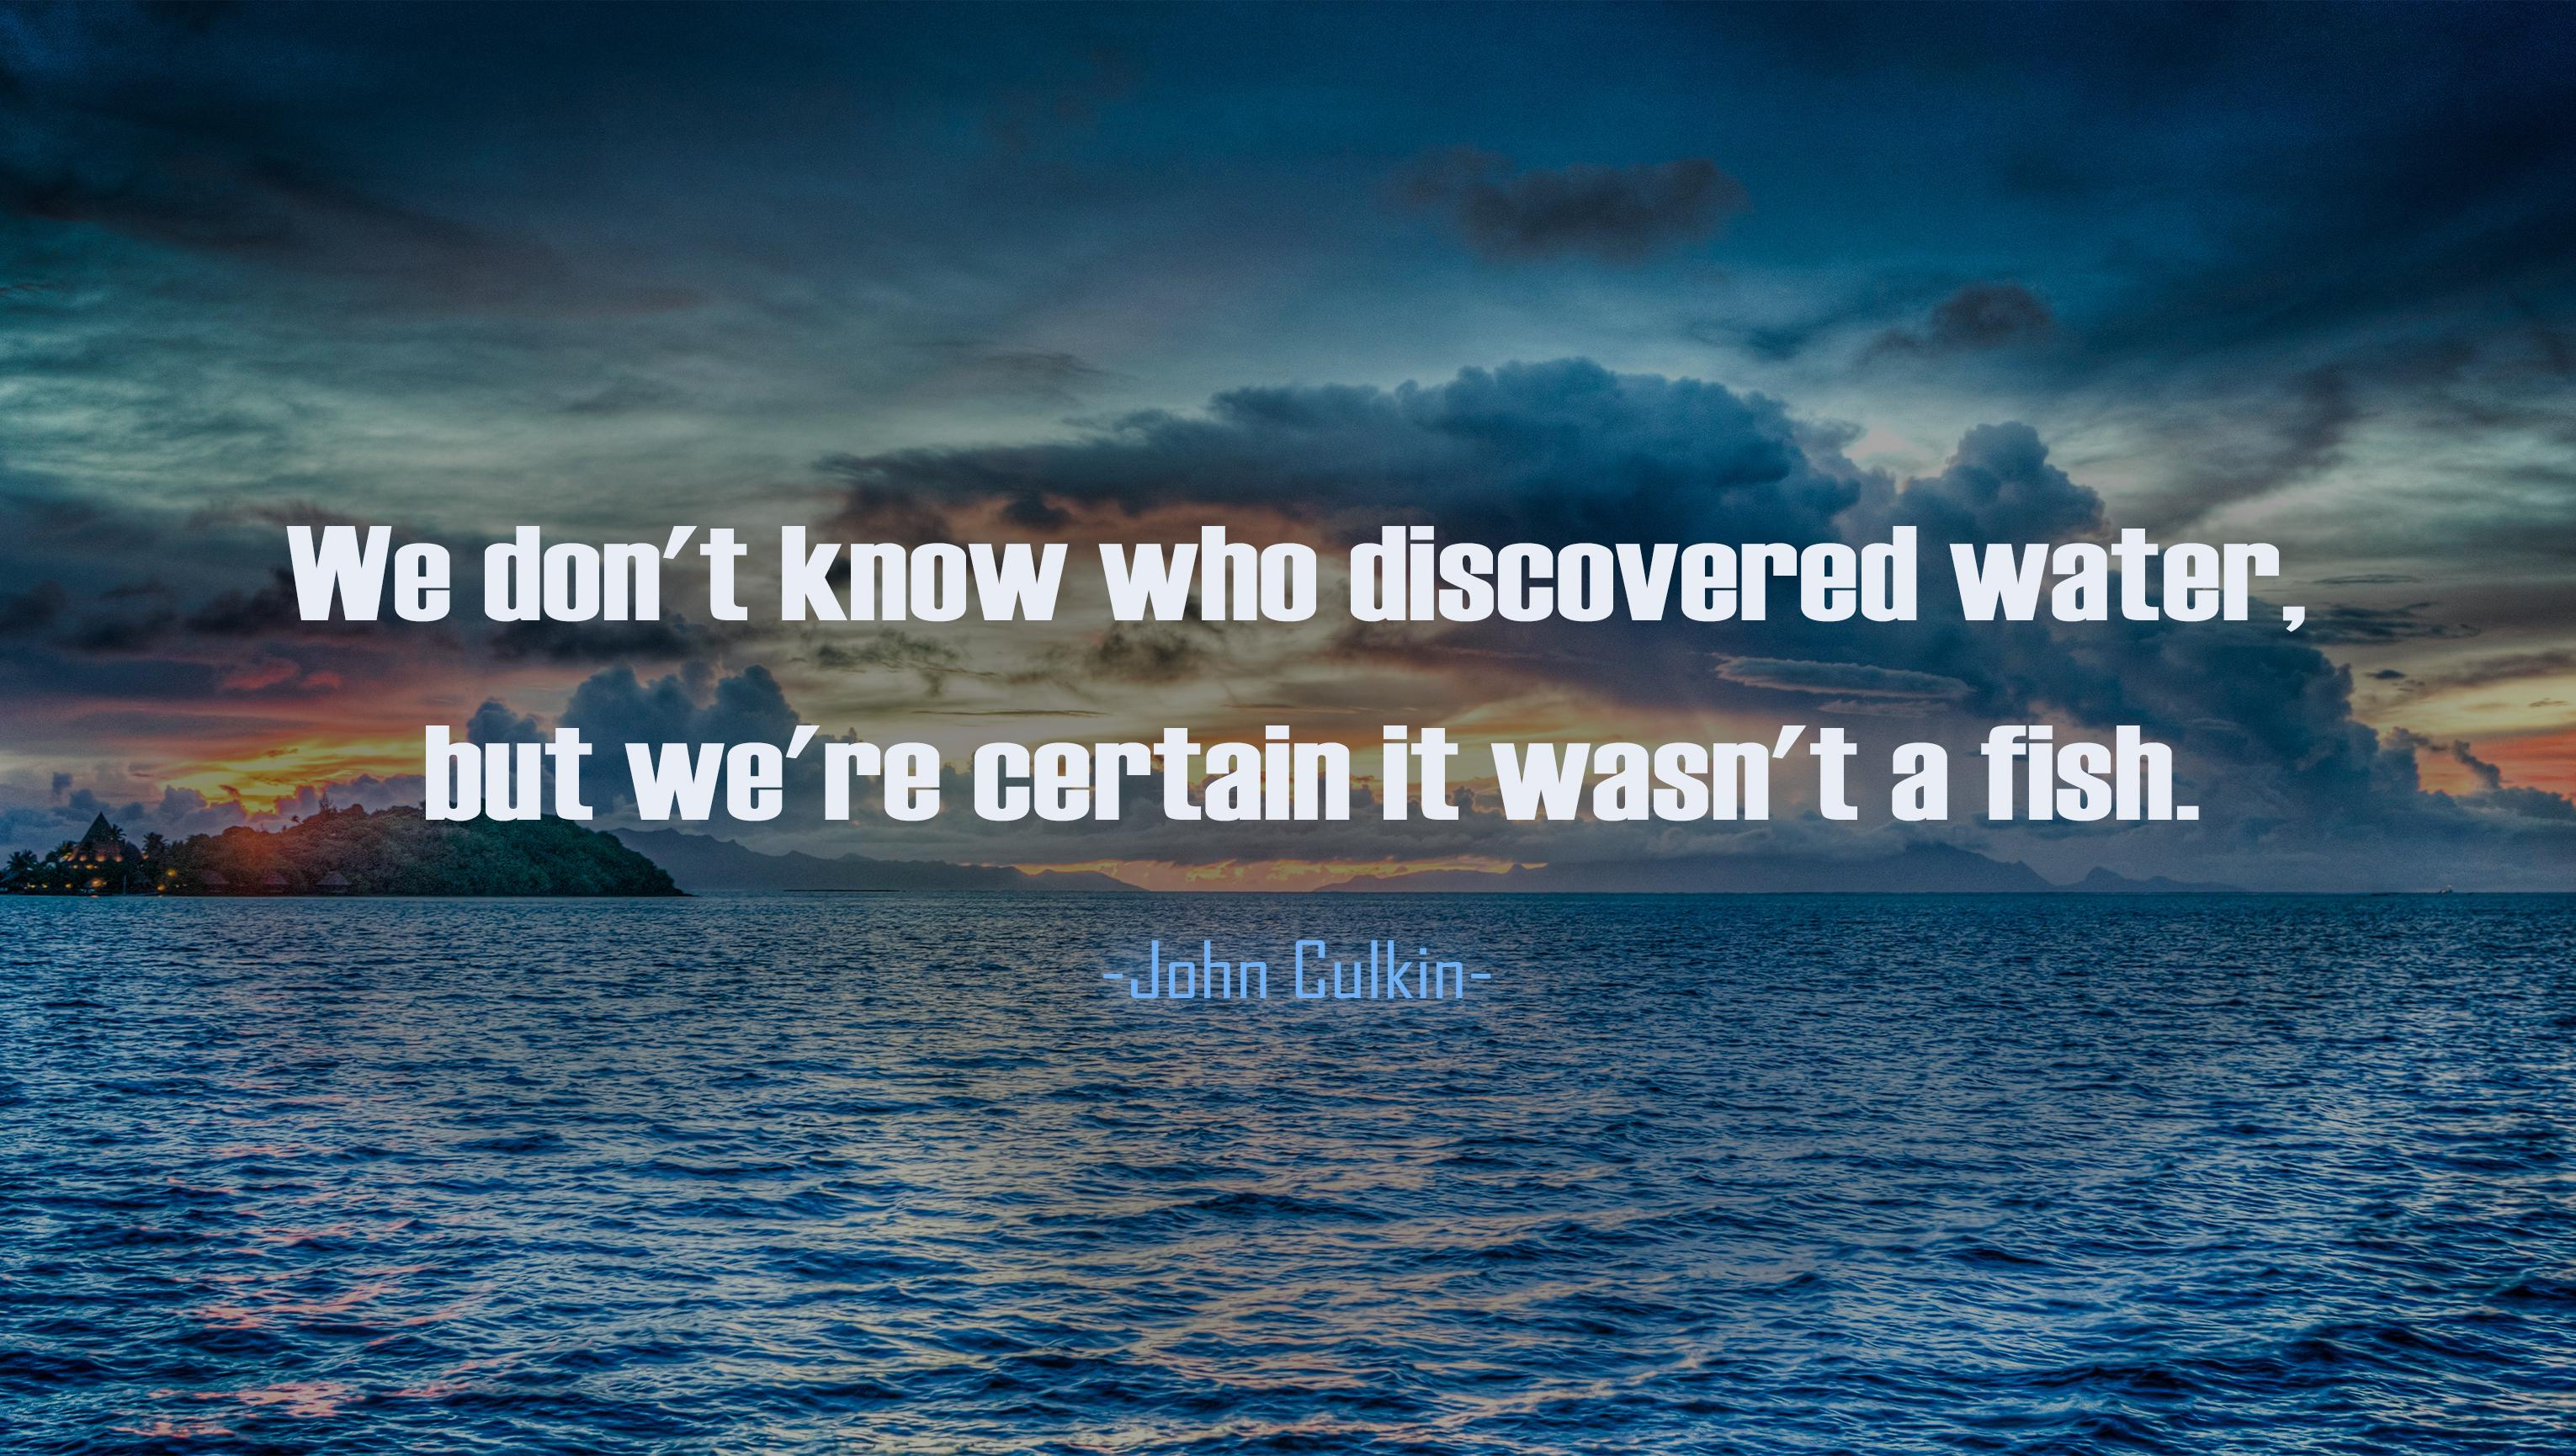 """We don't know who discovered water, but we're certain it wasn't a fish."" -John Culkin [3061×1730]"